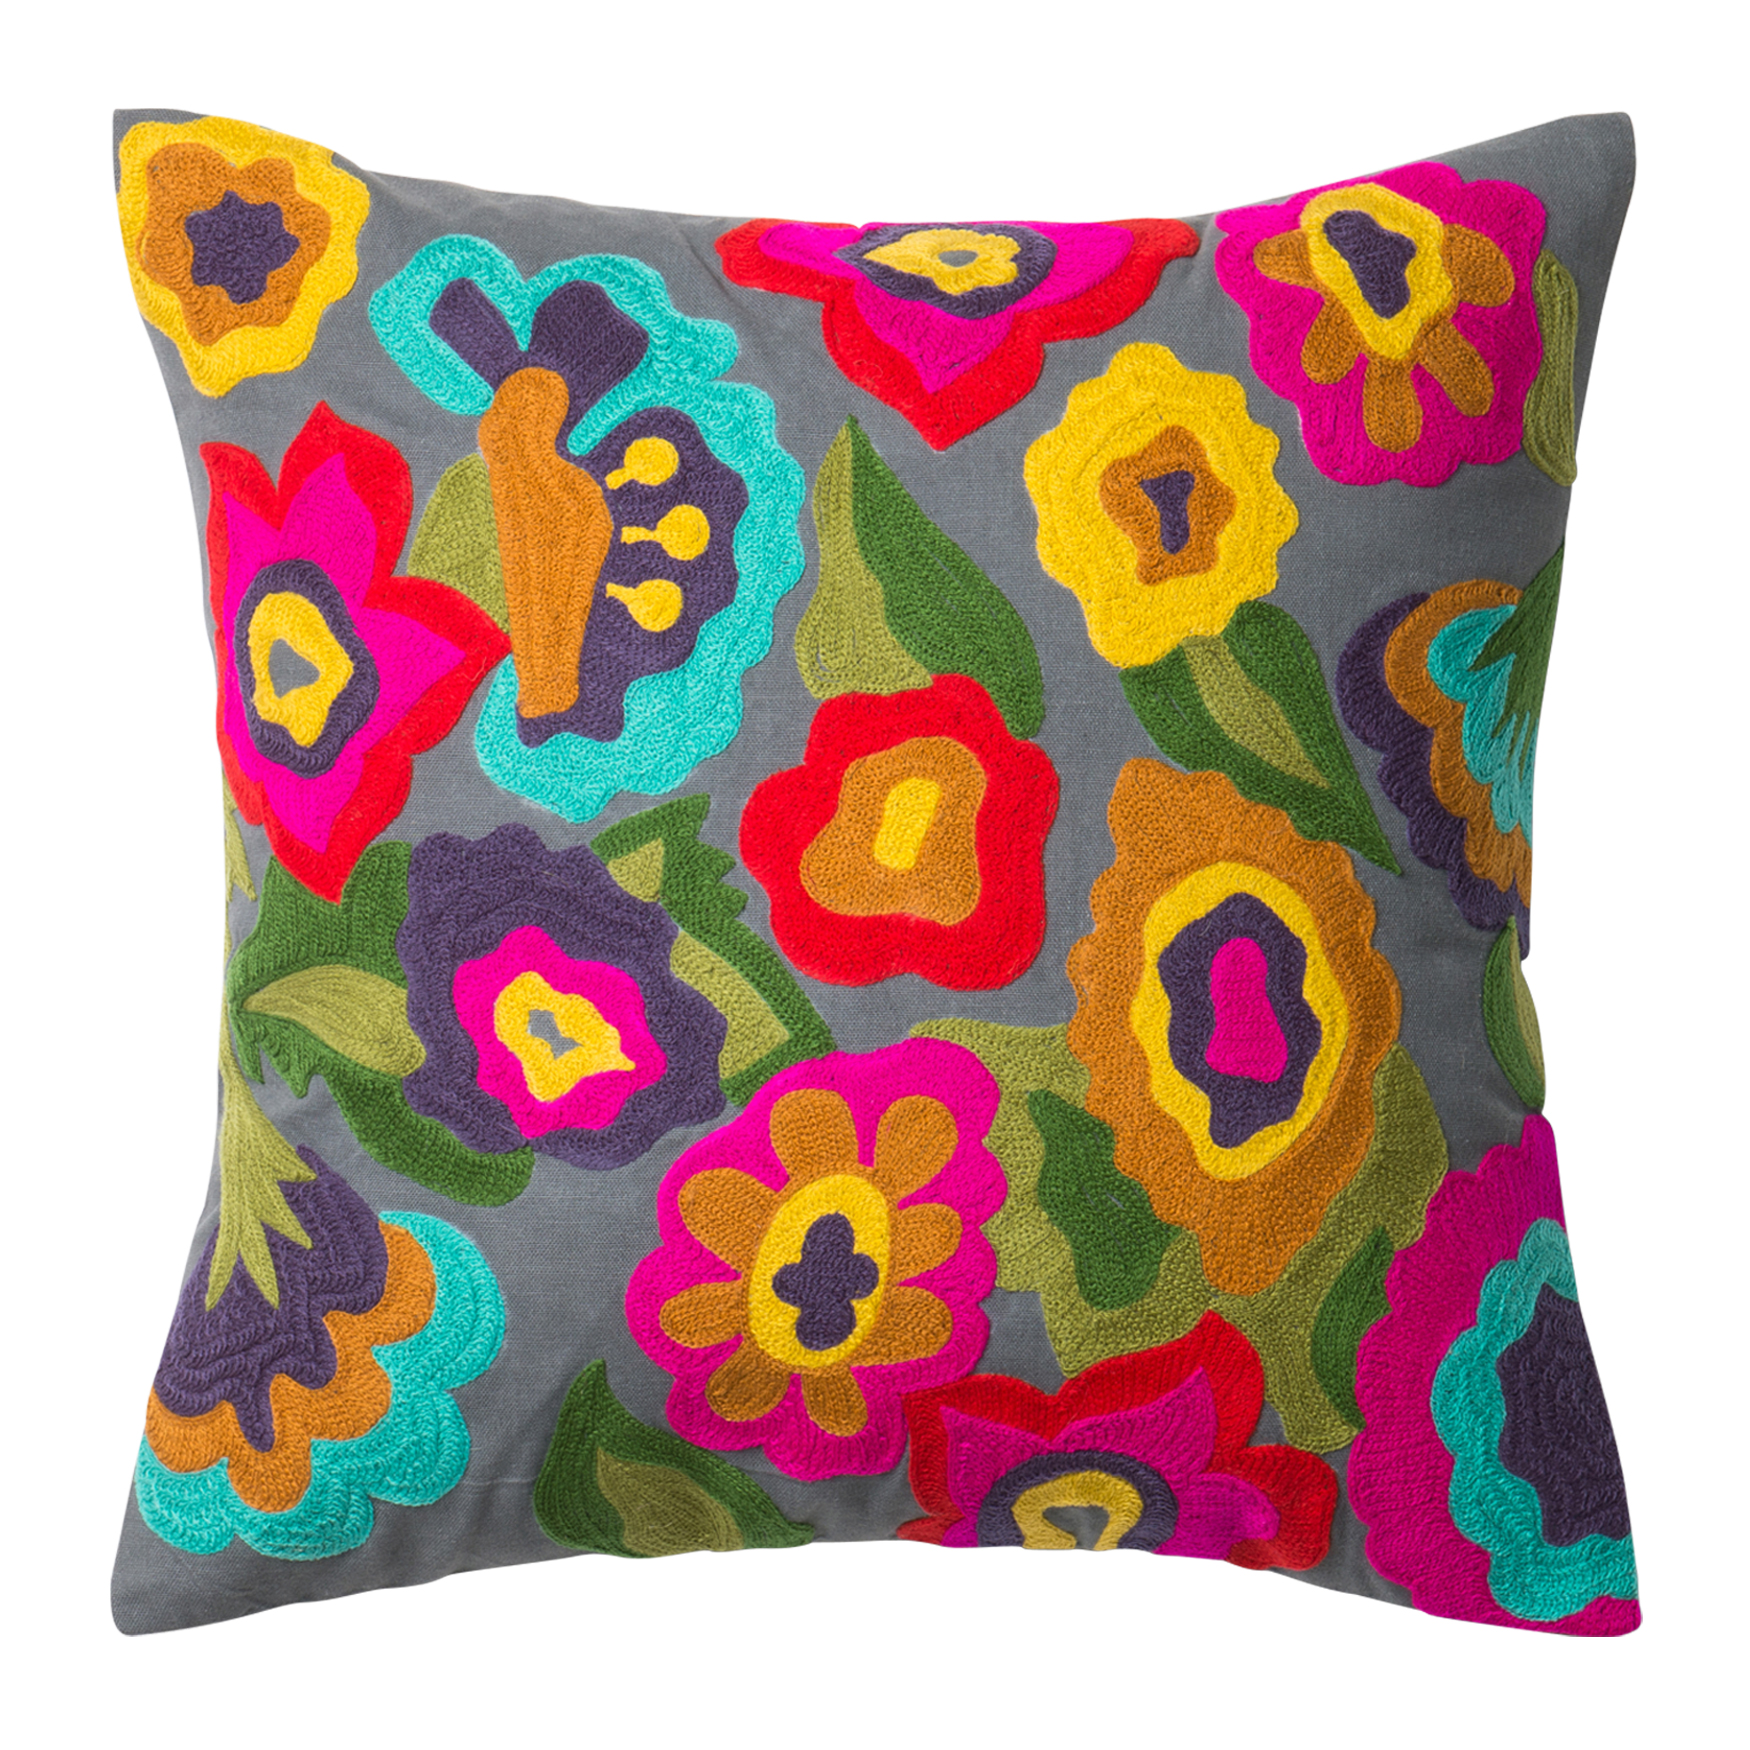 Multicolor Floral Embroidery Dec Pillow, MULTI